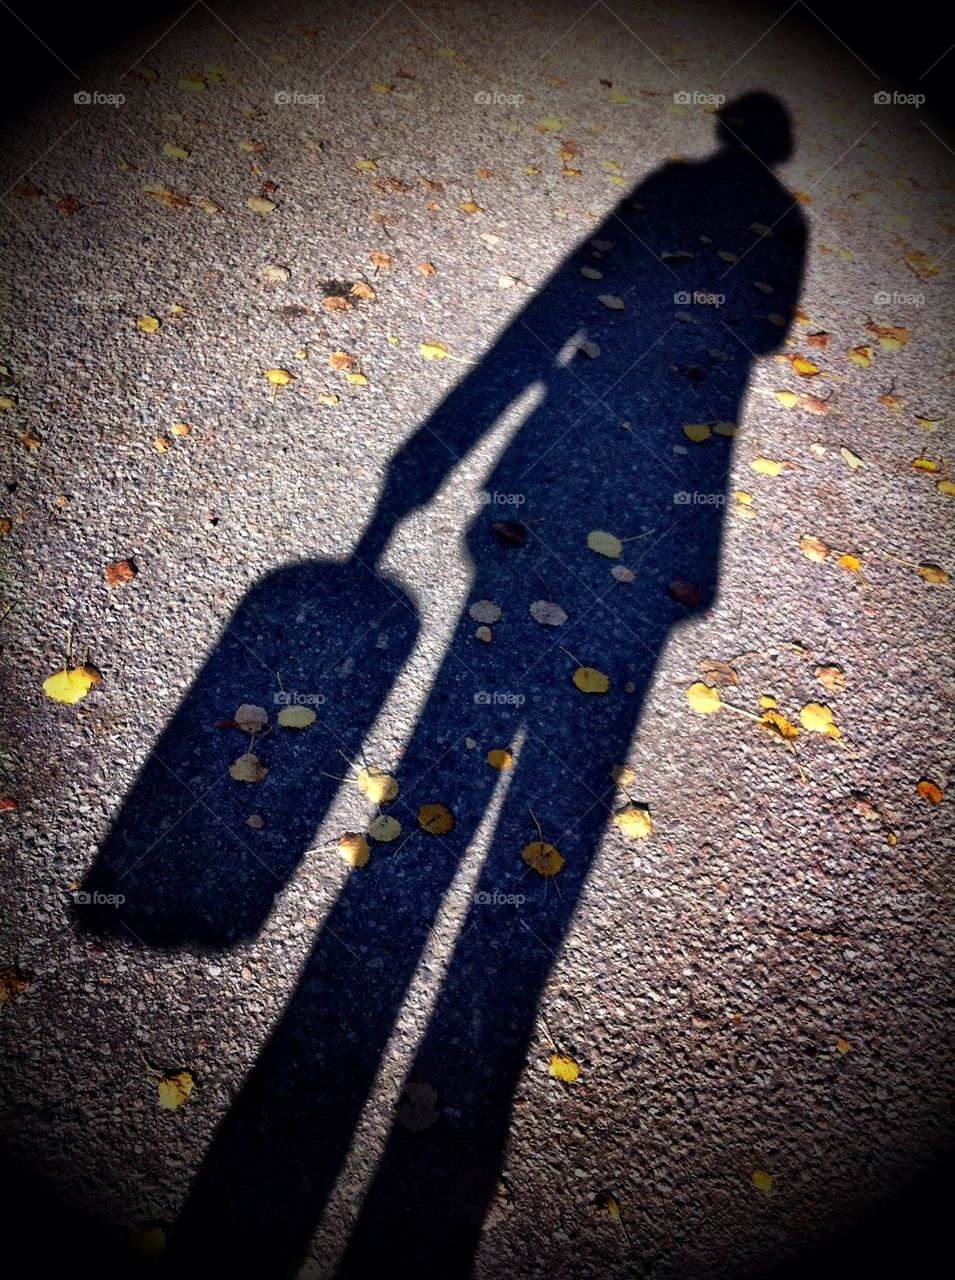 Shadow picture of women with bag.